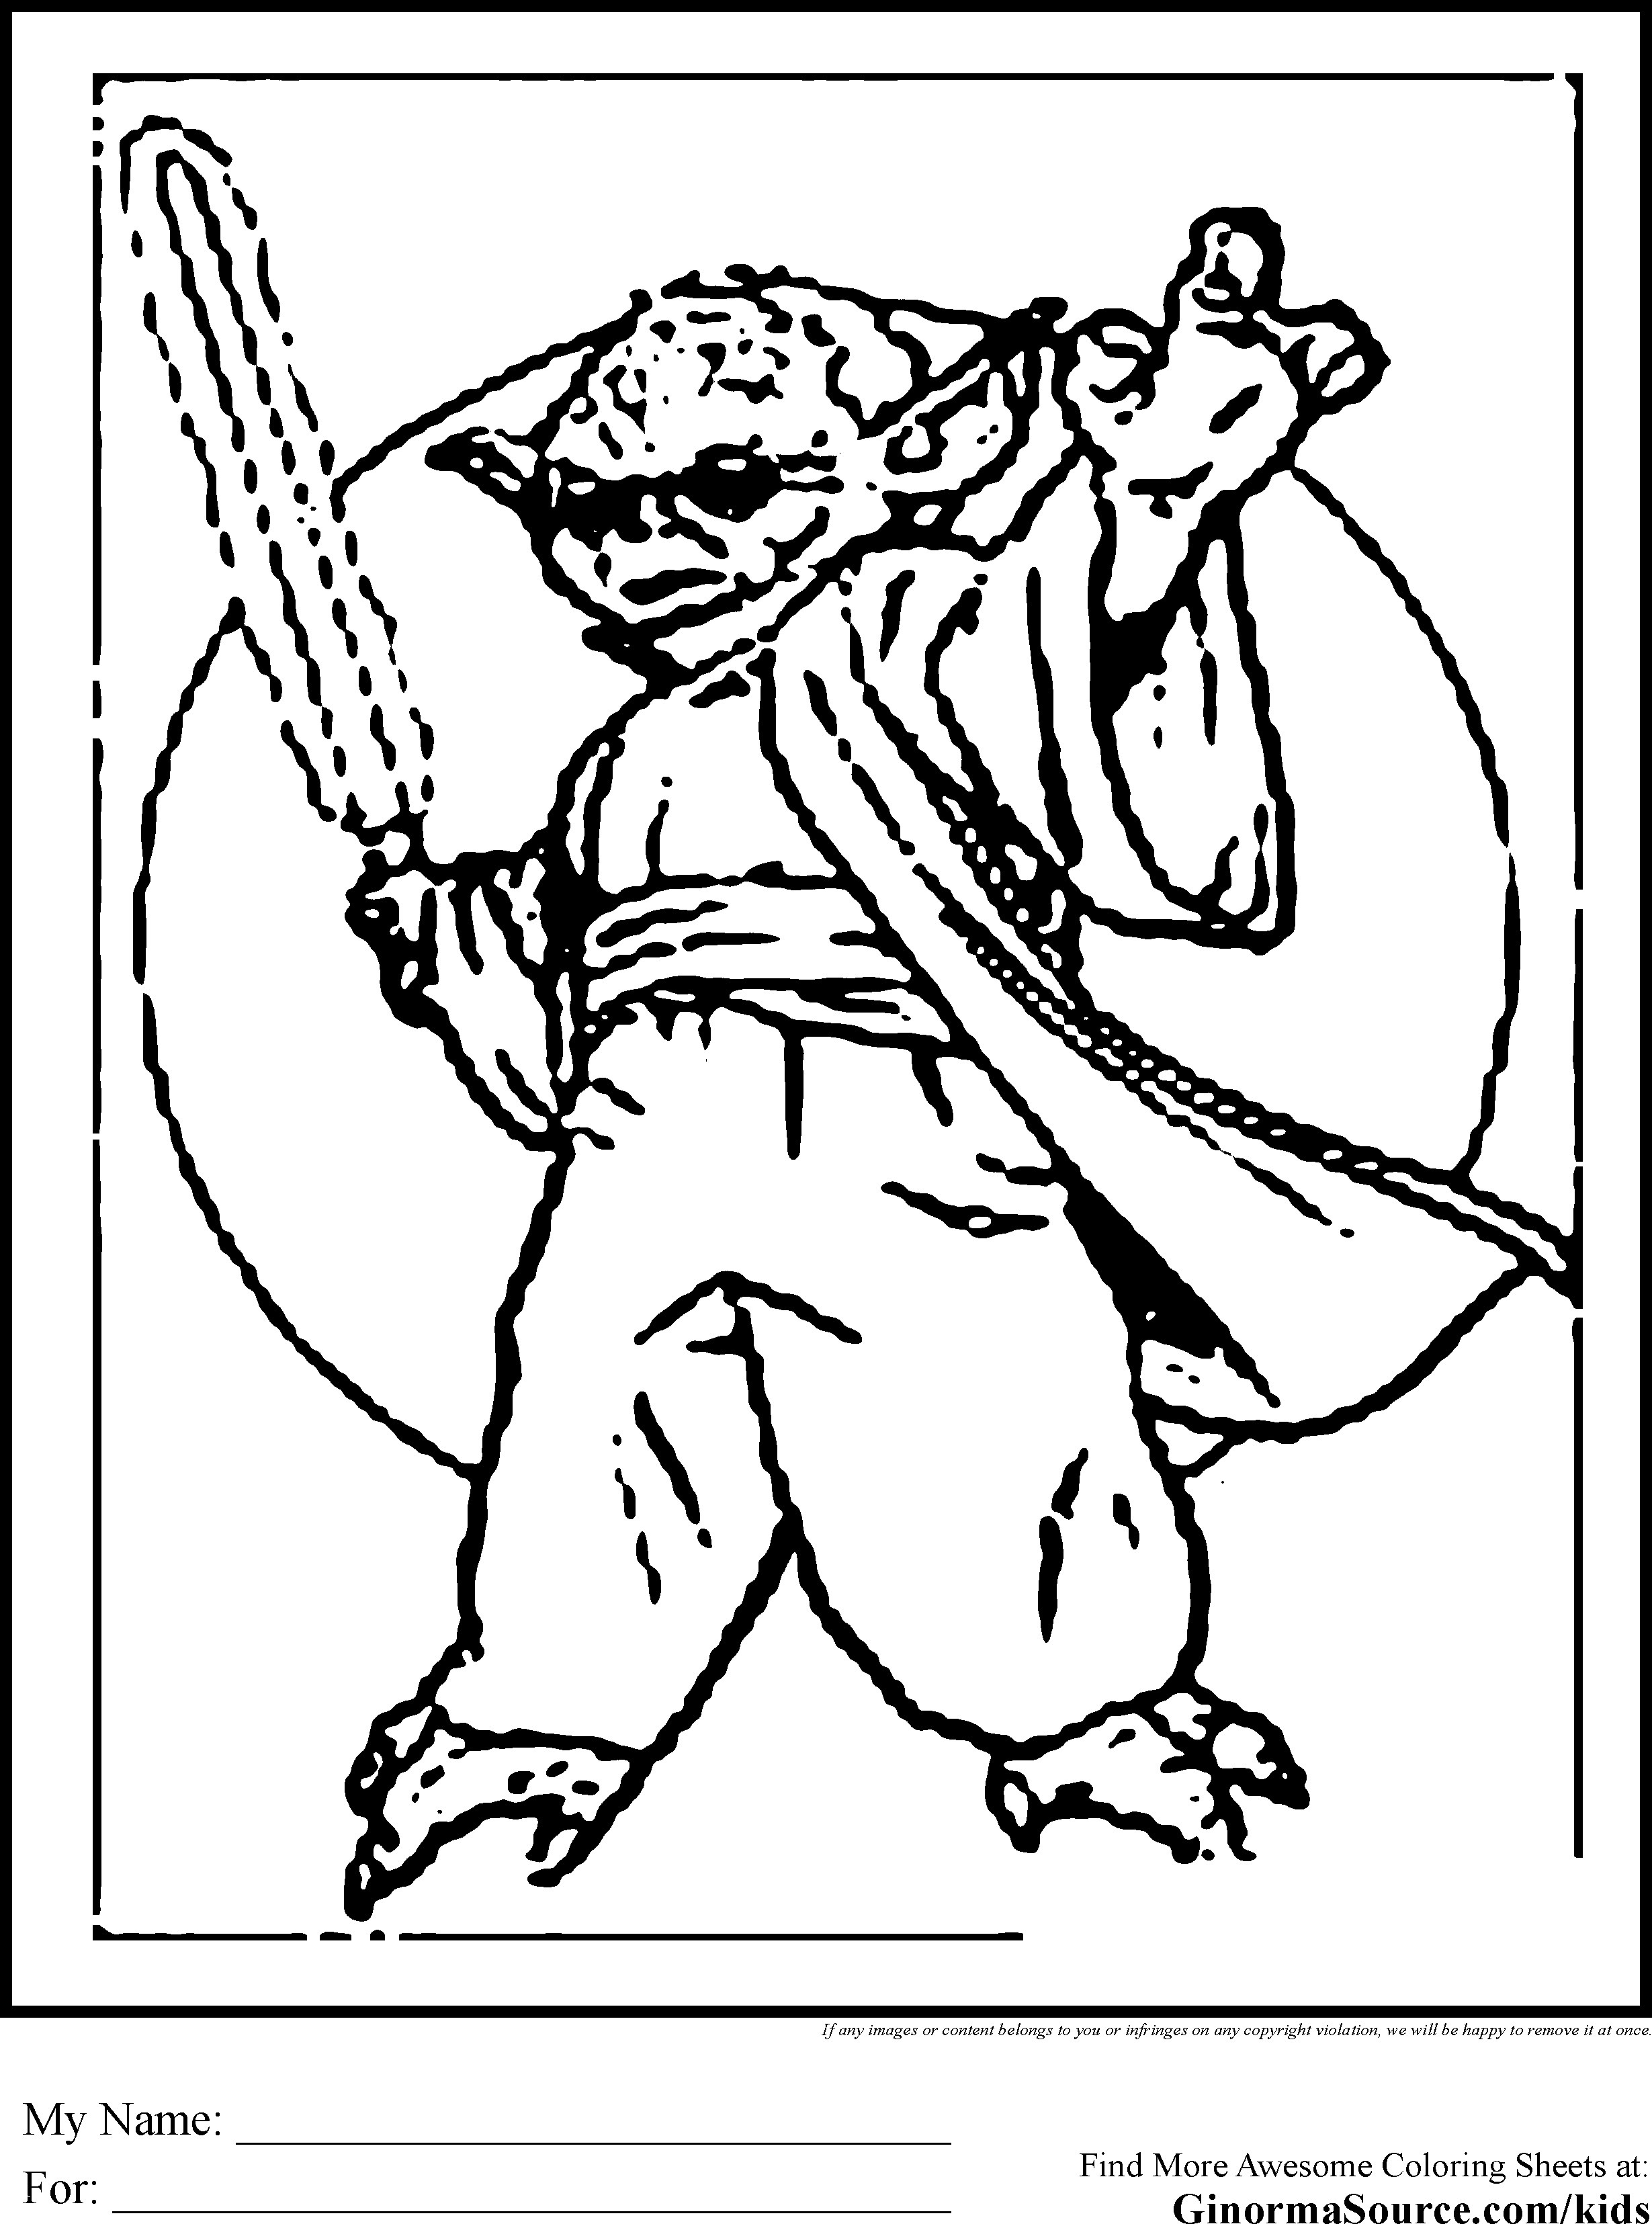 coloring pages you can print Collection-Ausmalbilder Von Spiderman Elegant Star Wars Printable Coloring Pages Fresh Coloring Printables 0d 3-r